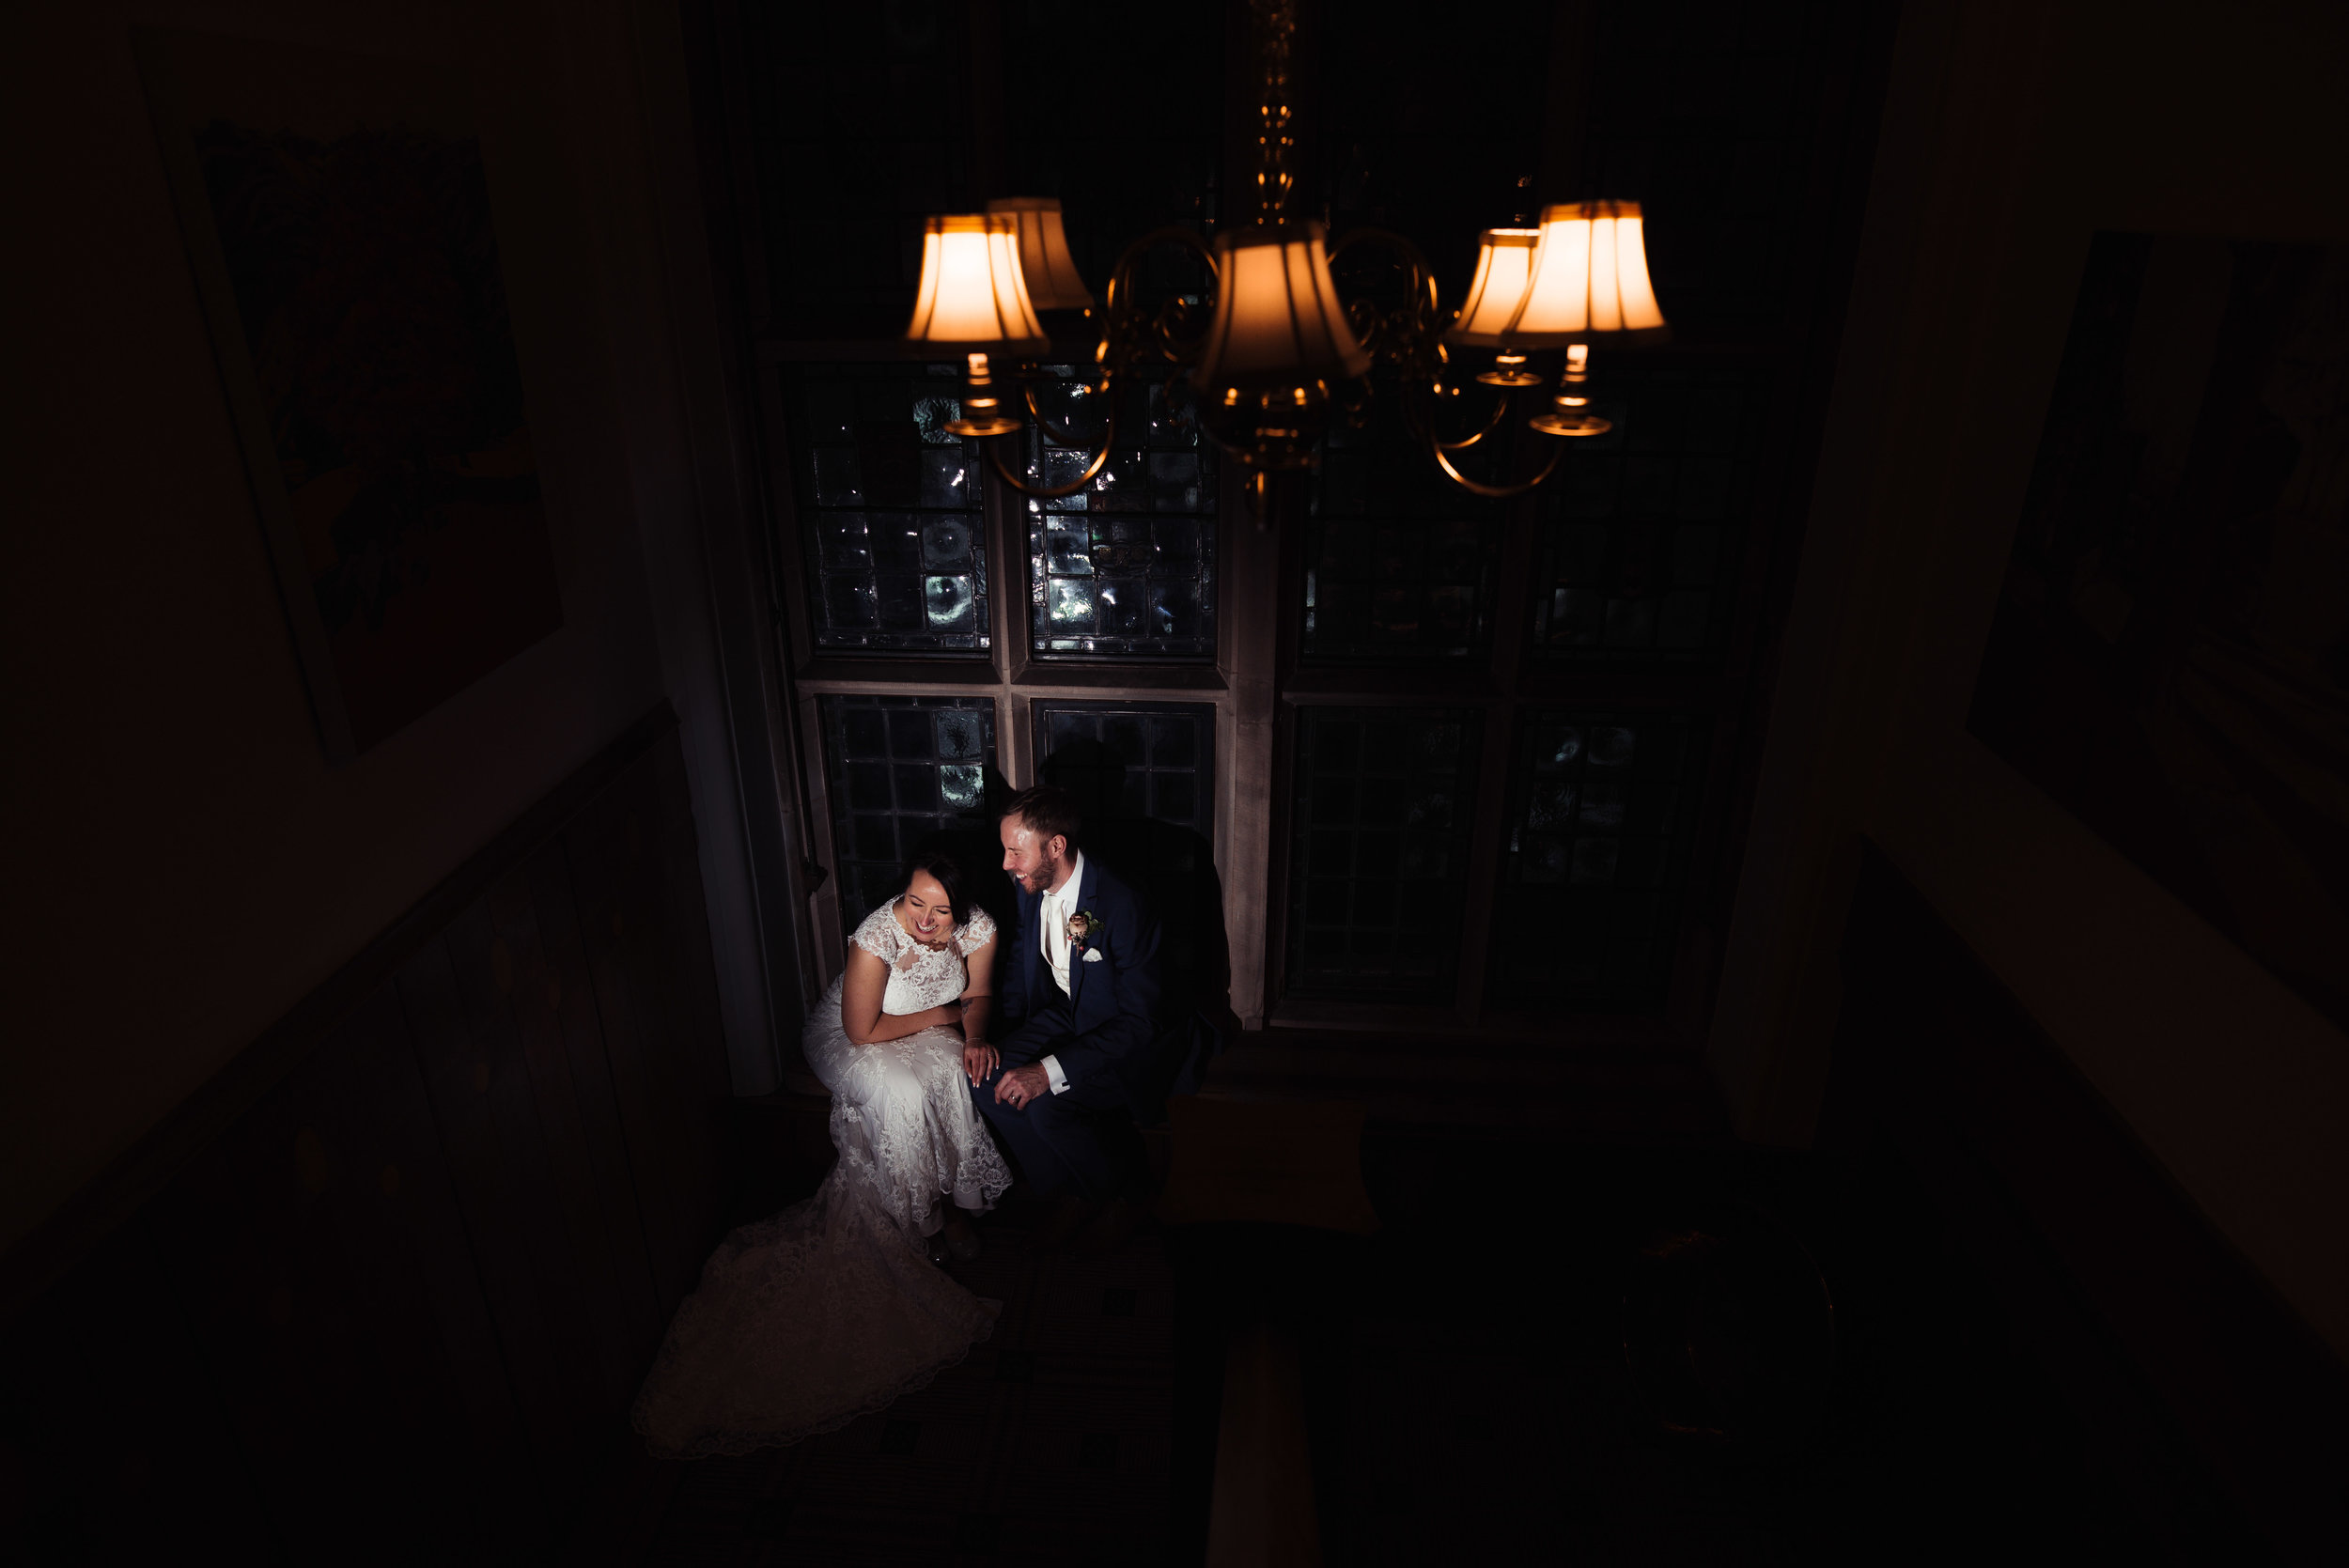 Bride and groom share a laugh together on the stairs during their wedding photography session